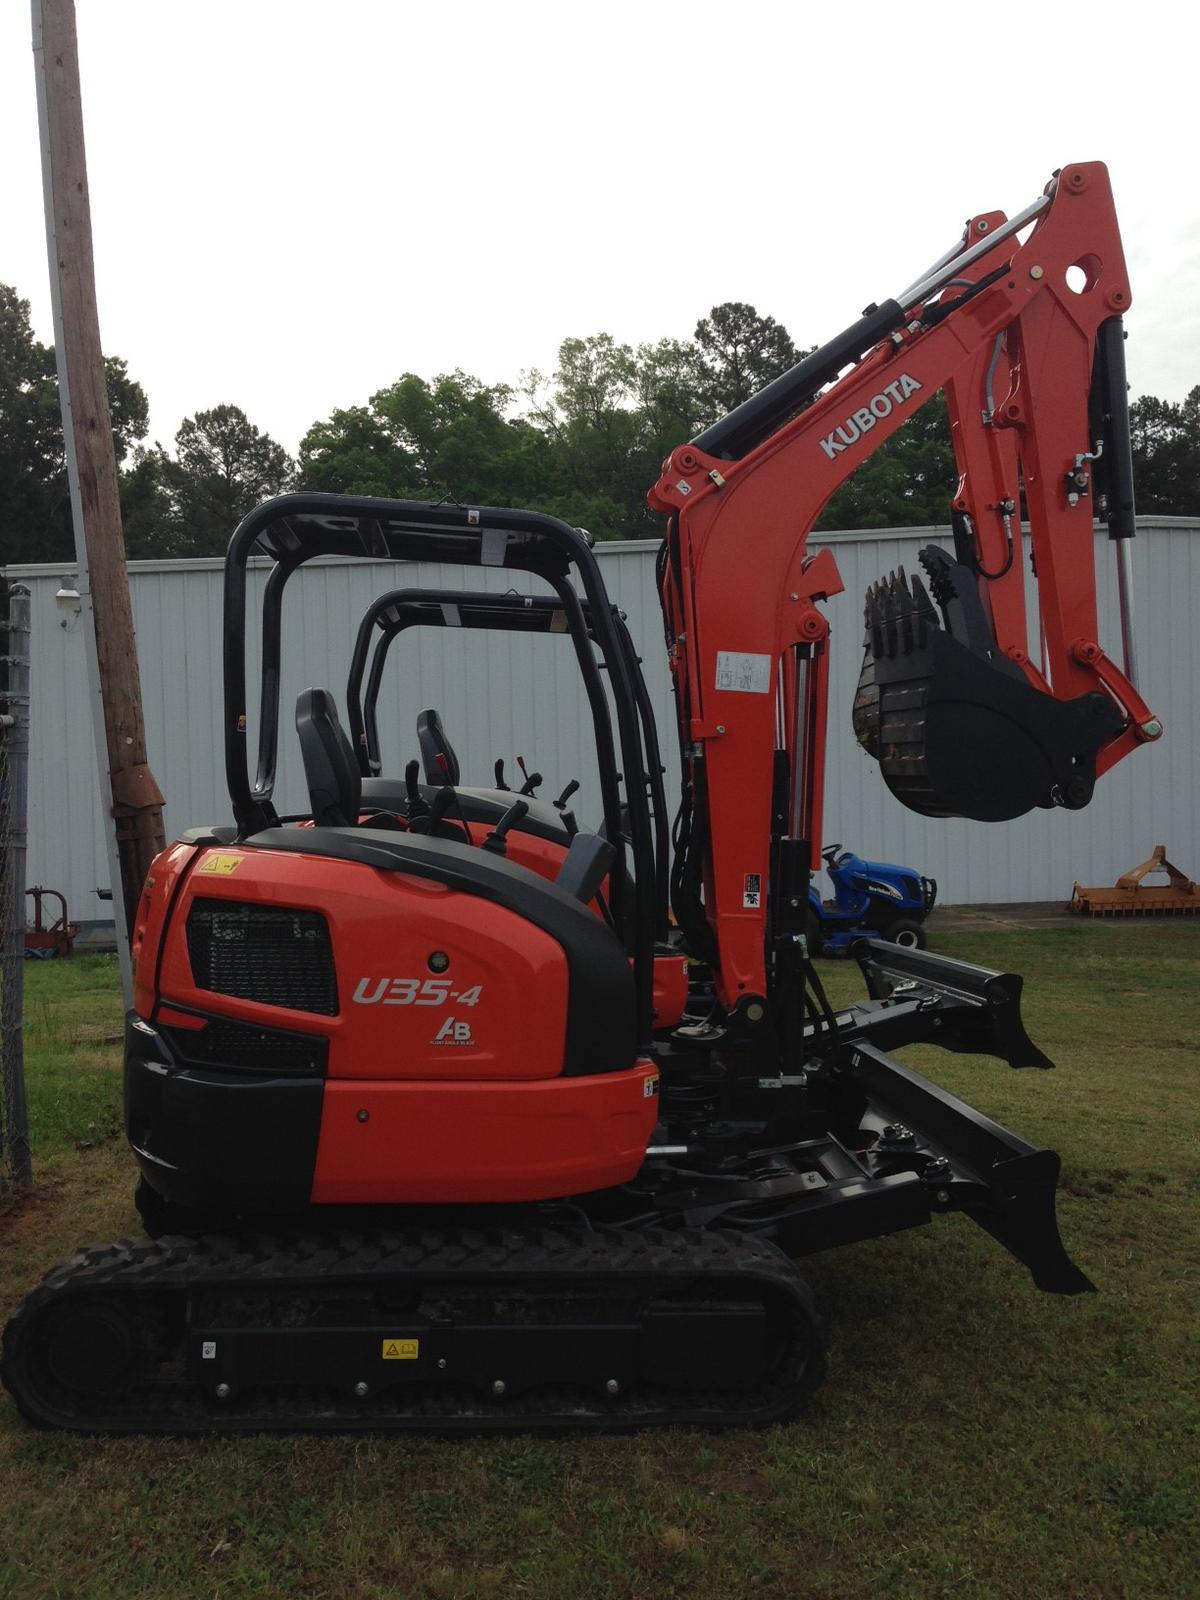 2017 Kubota U35-4 Angle Blade Canopy w/Rubber Tracks for sale in Raleigh NC | The Tractor Center (800) 331-2519  sc 1 st  The Tractor Center & 2017 Kubota U35-4 Angle Blade Canopy w/Rubber Tracks for sale in ...